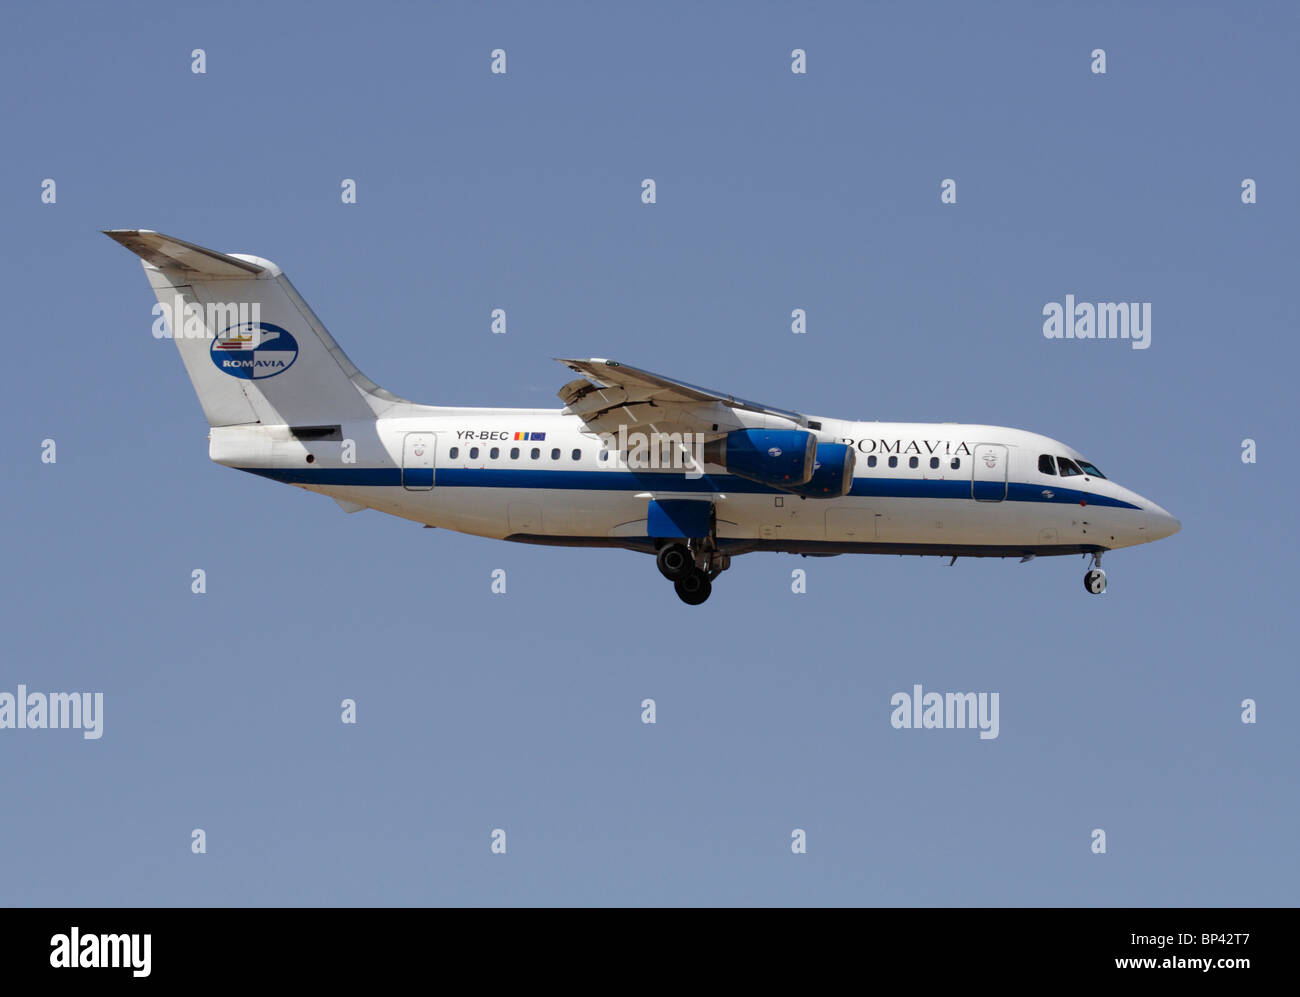 Romavia British Aerospace 146-200 small airliner on approach. Side view. Stock Photo